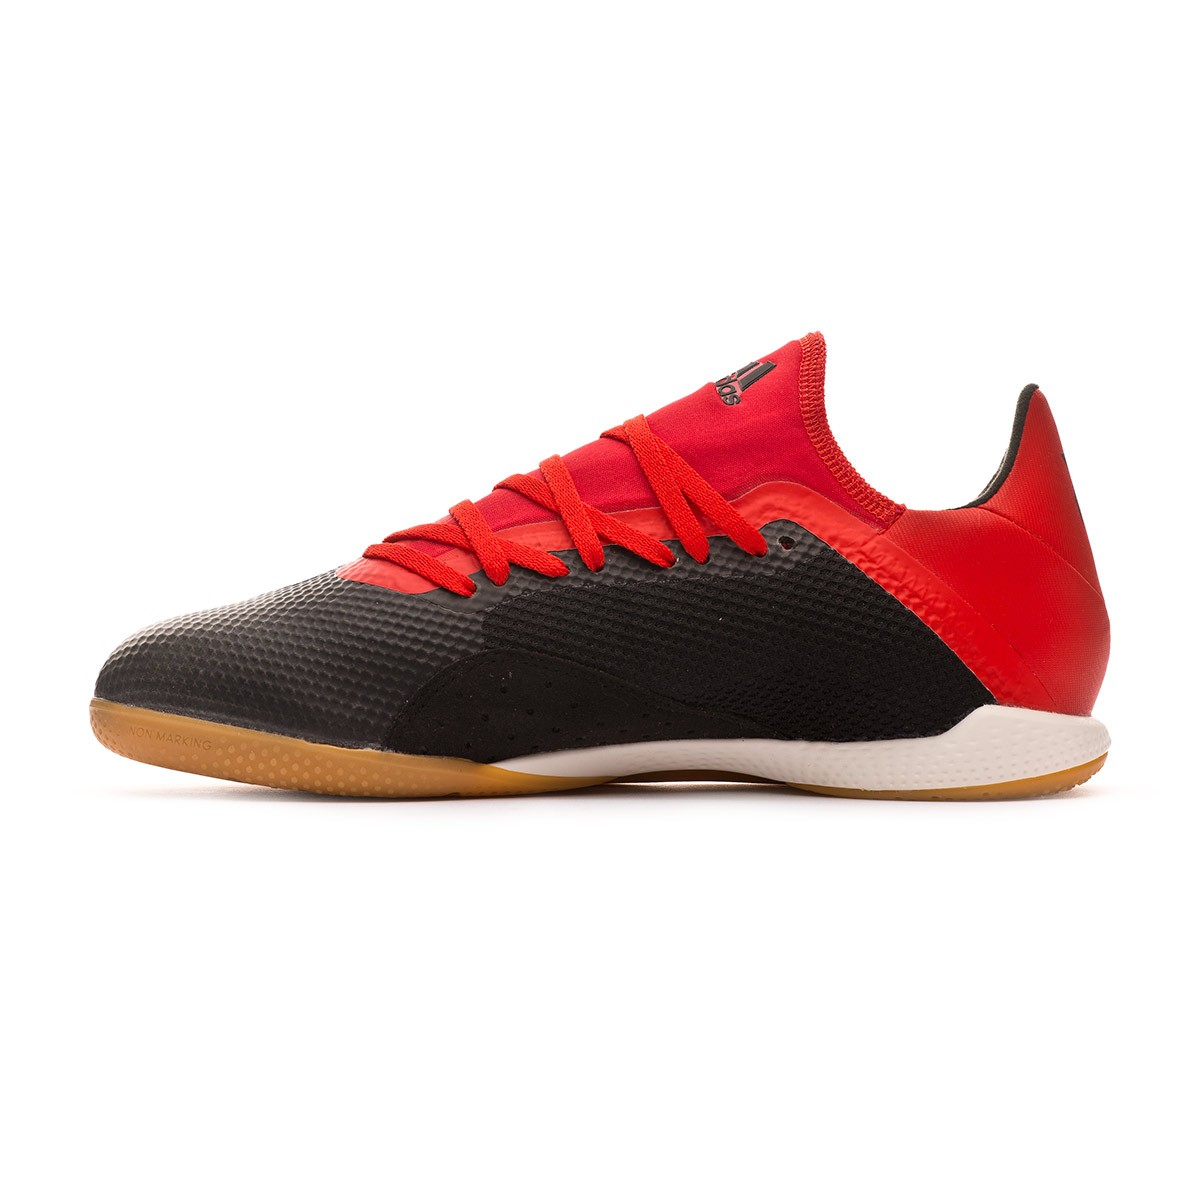 Futsal Boot adidas X Tango 18.3 IN Core black-Off white-Active red - Leaked  soccer 3be88ca1dfd45